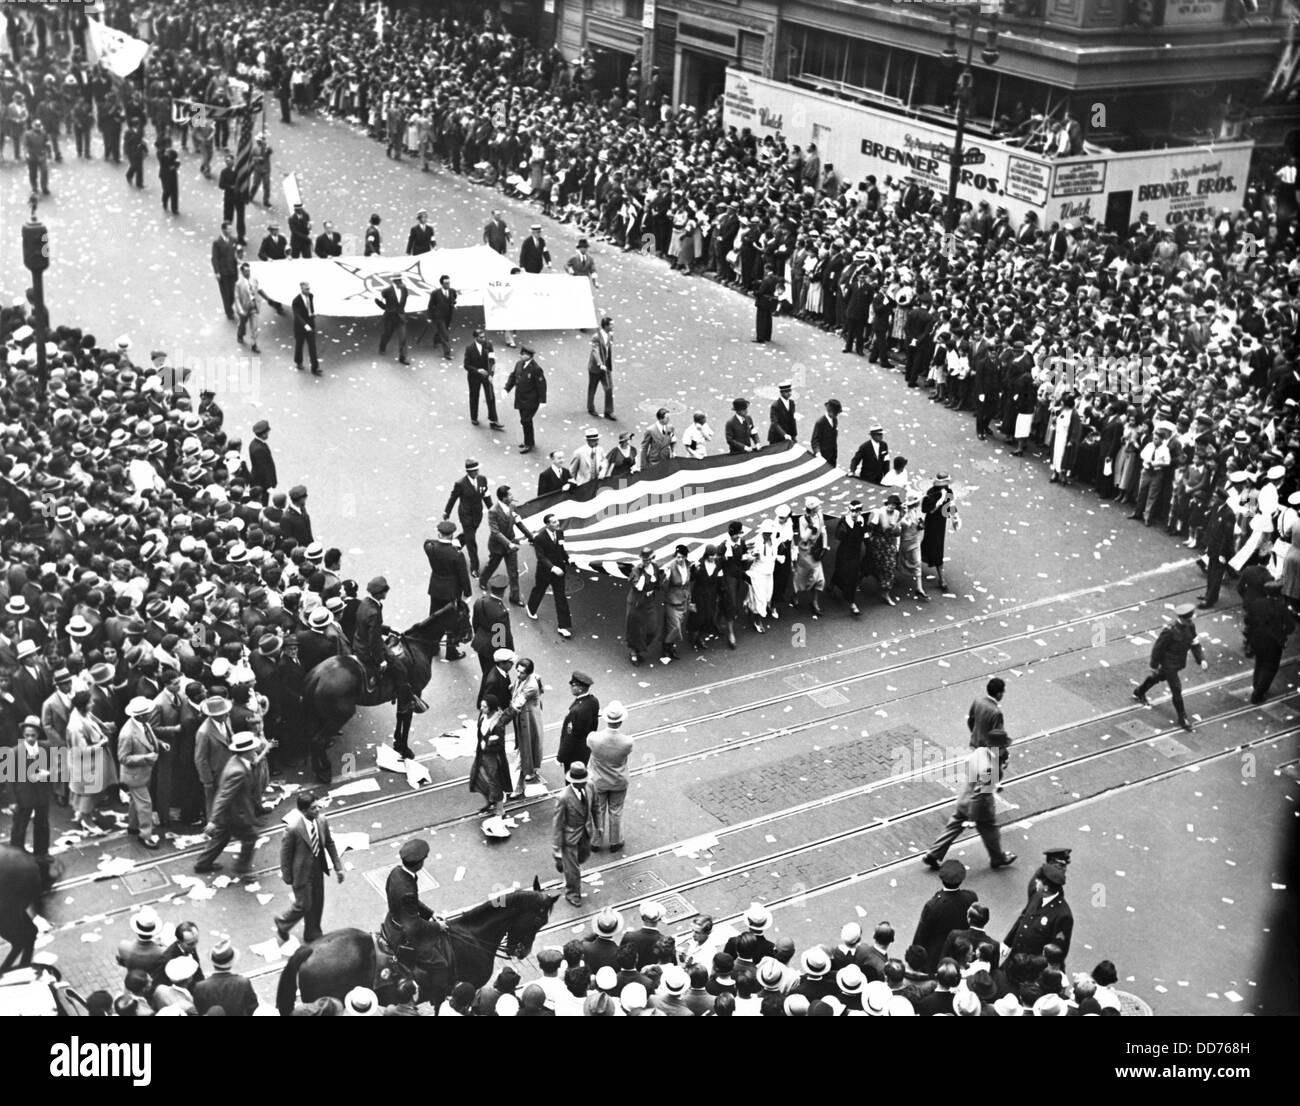 National Recovery Administration (NRA) parade, NYC, 1933. The large American flag is carried by female film industry - Stock Image